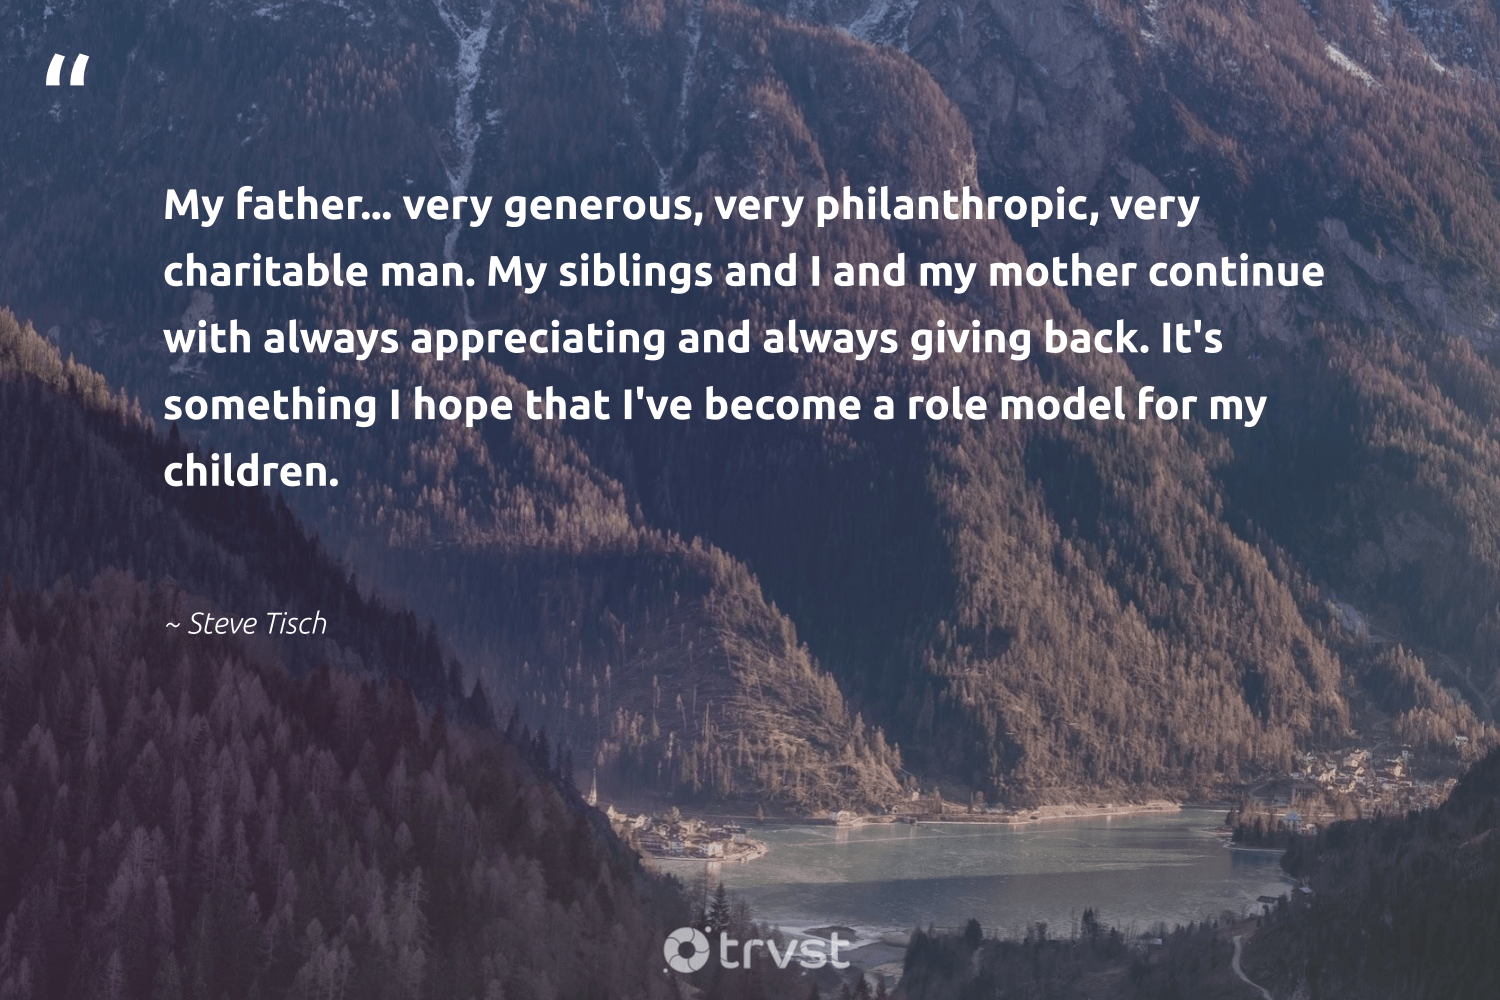 """""""My father... very generous, very philanthropic, very charitable man. My siblings and I and my mother continue with always appreciating and always giving back. It's something I hope that I've become a role model for my children.""""  - Steve Tisch #trvst #quotes #givingback #hope #children #philanthropic #giveback #philanthropy #itscooltobekind #togetherwecan #dotherightthing #socialgood"""